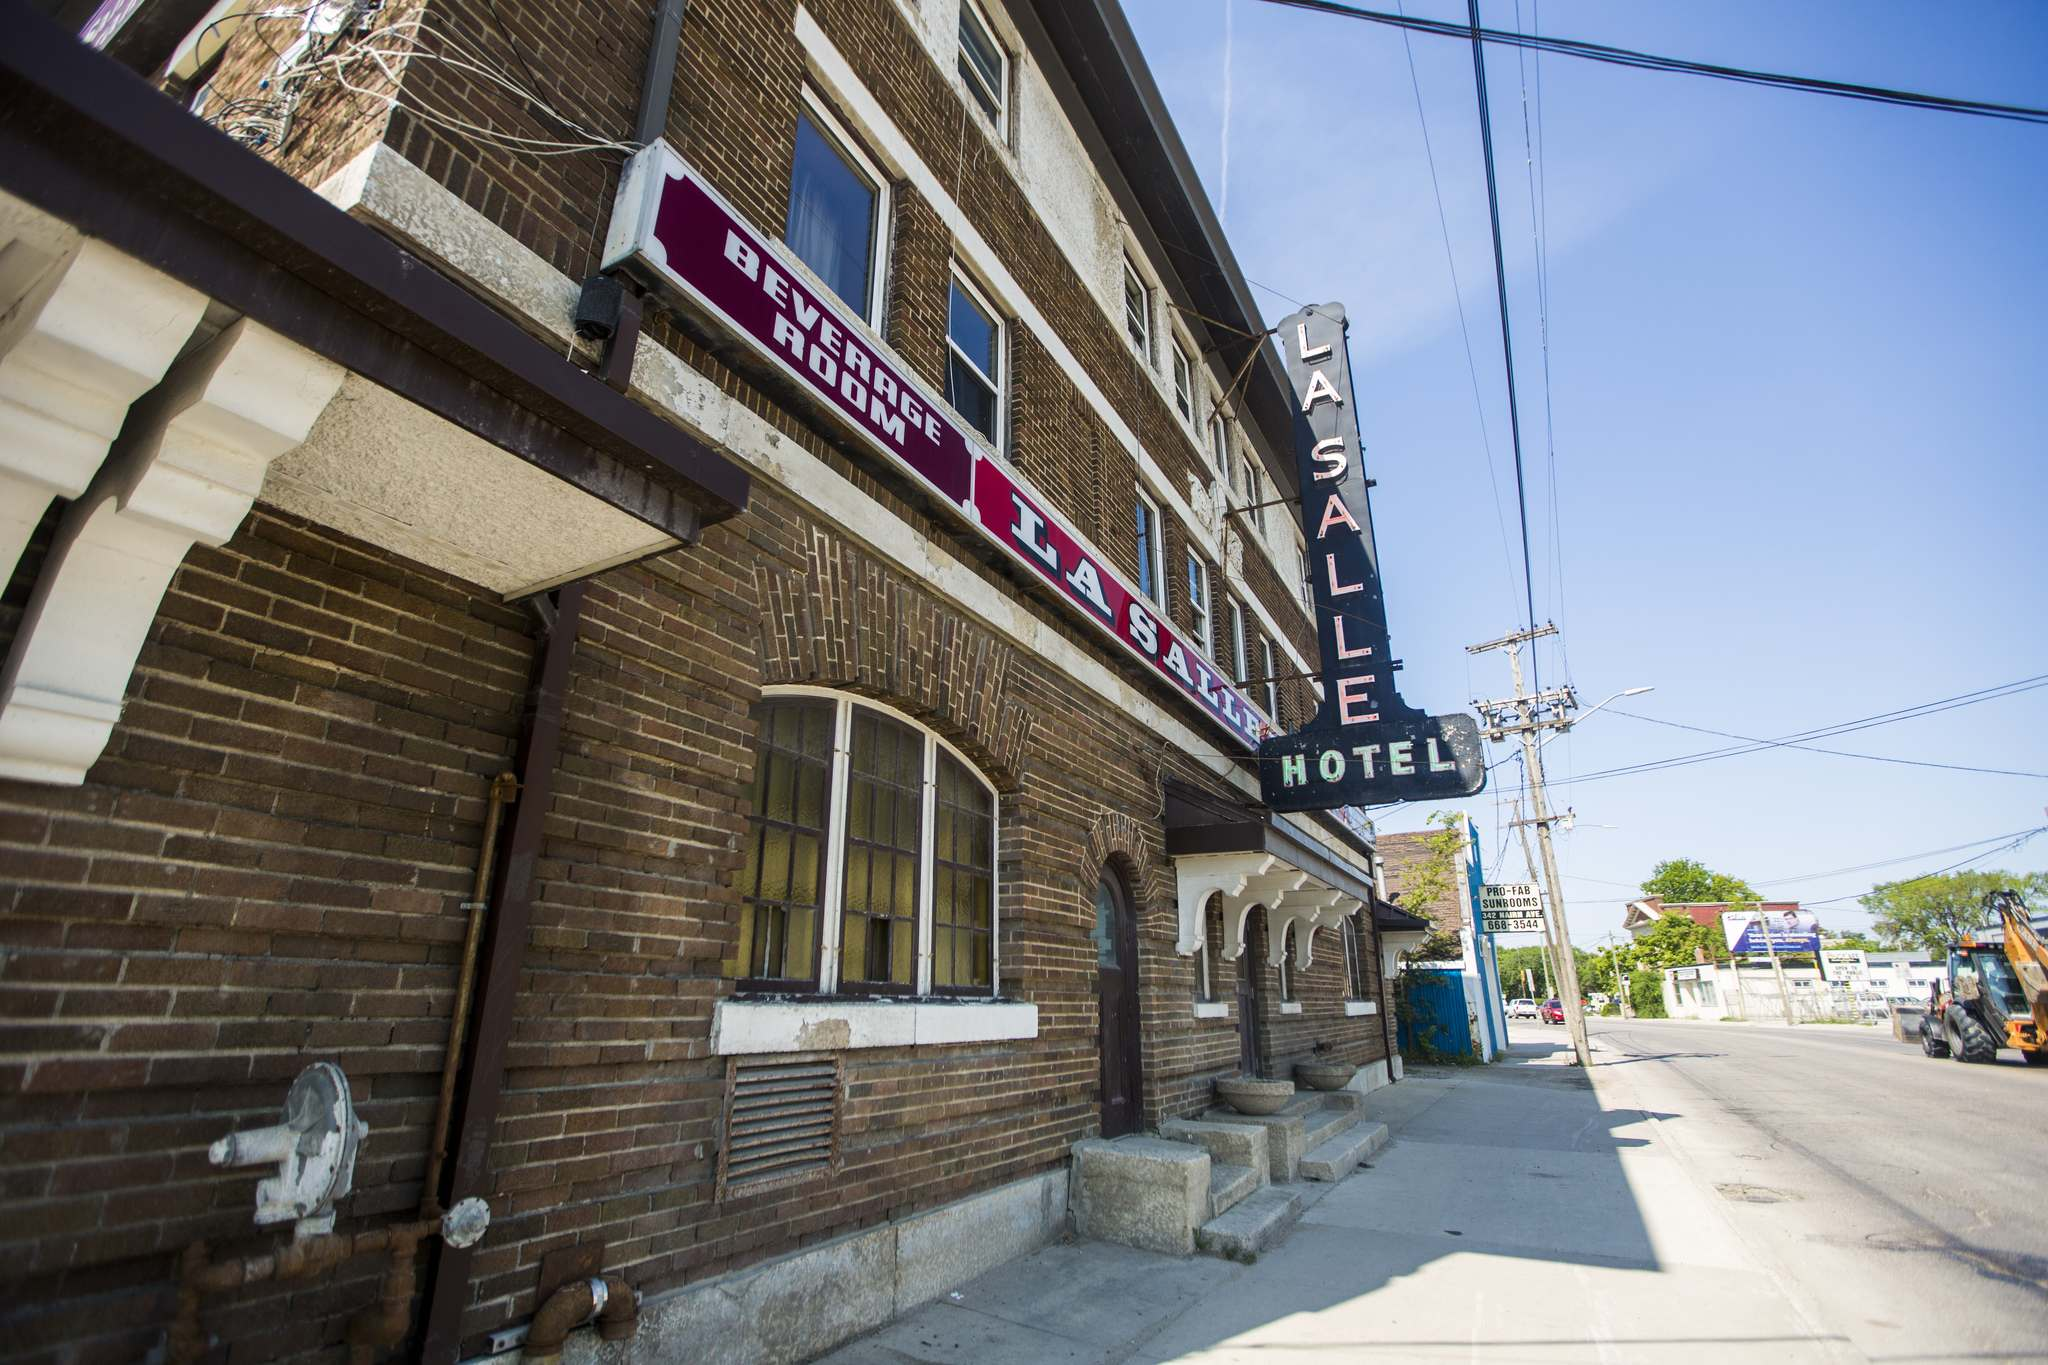 The LaSalle Hotel, at 346 Nairn Ave., is an iconic east Winnipeg establishment. (Mikaela MacKenzie / Winnipeg Free Press)